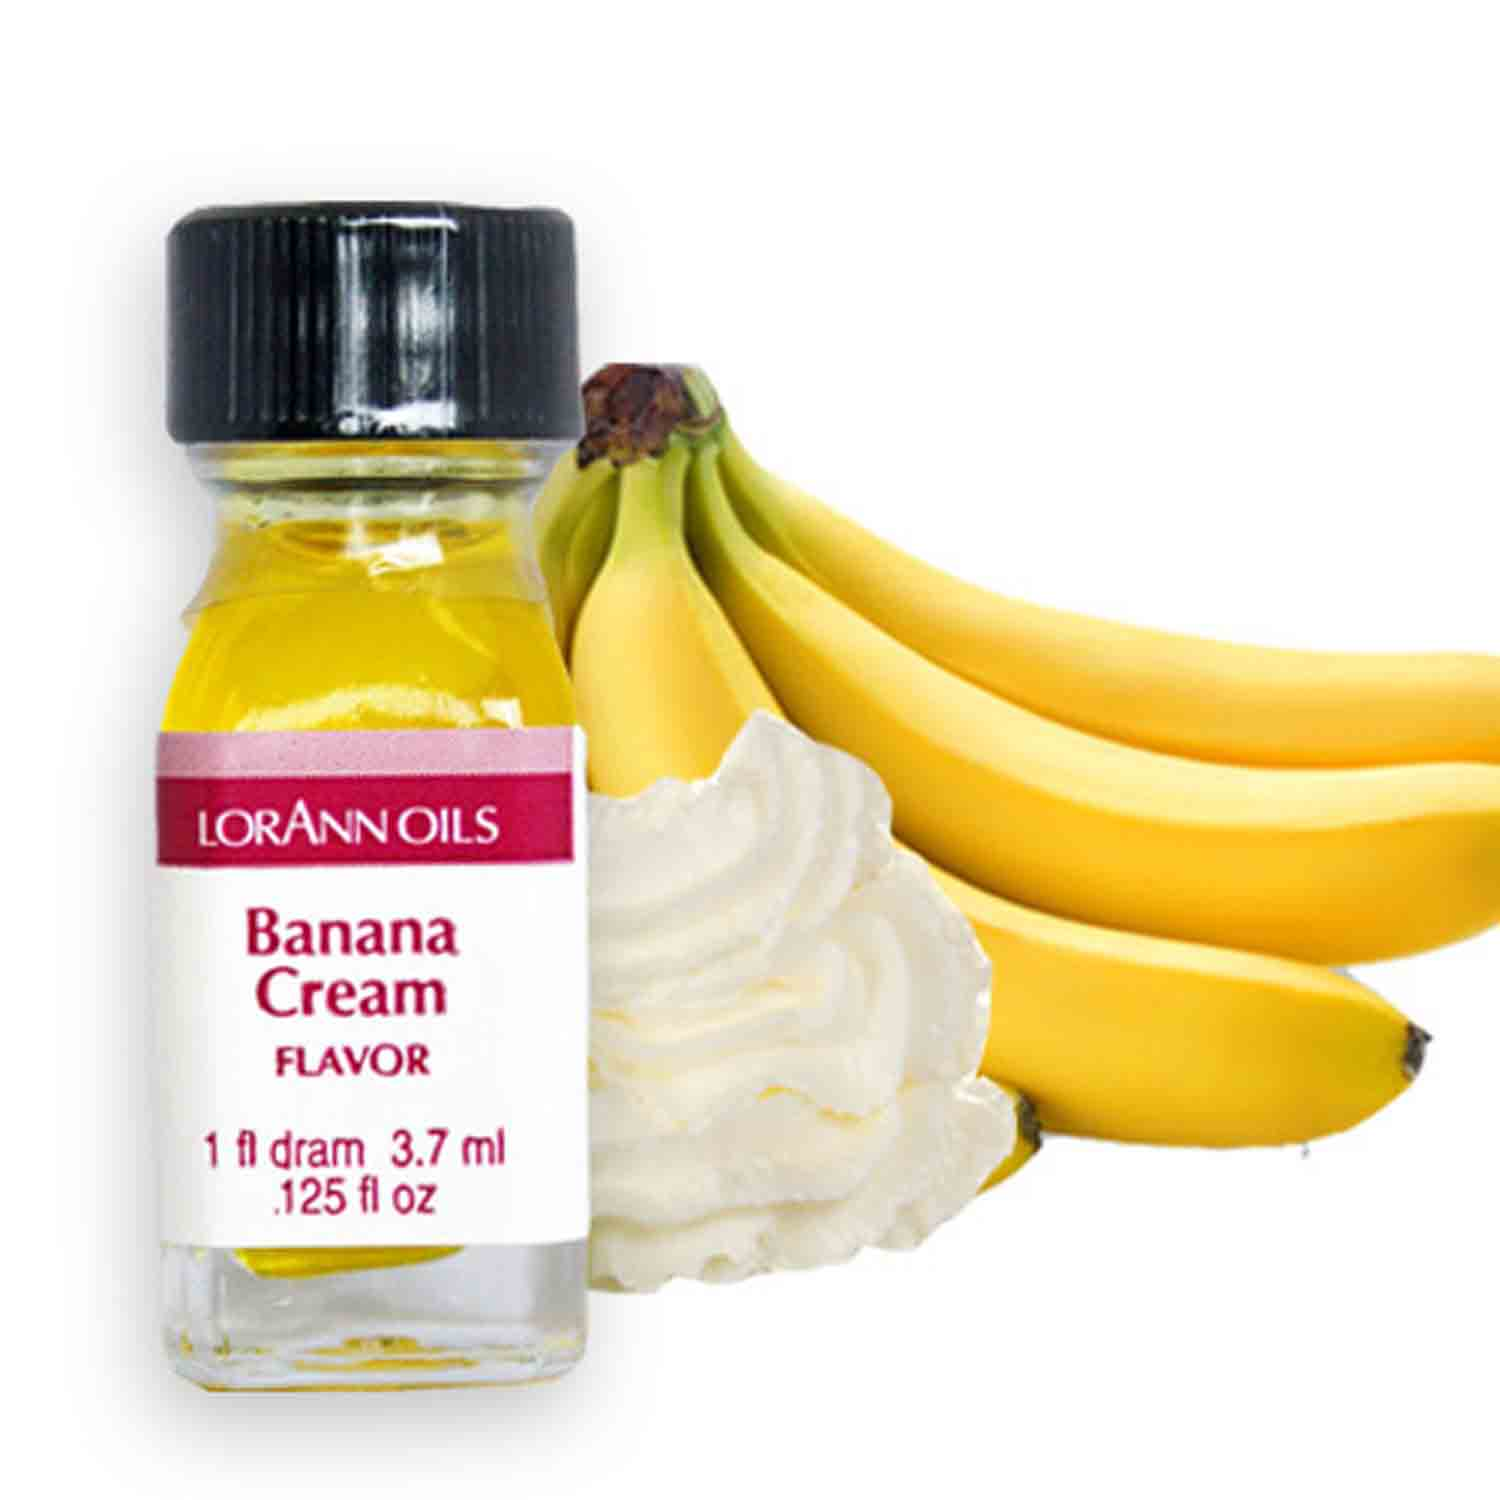 Banana Crème Super-Strength Flavor